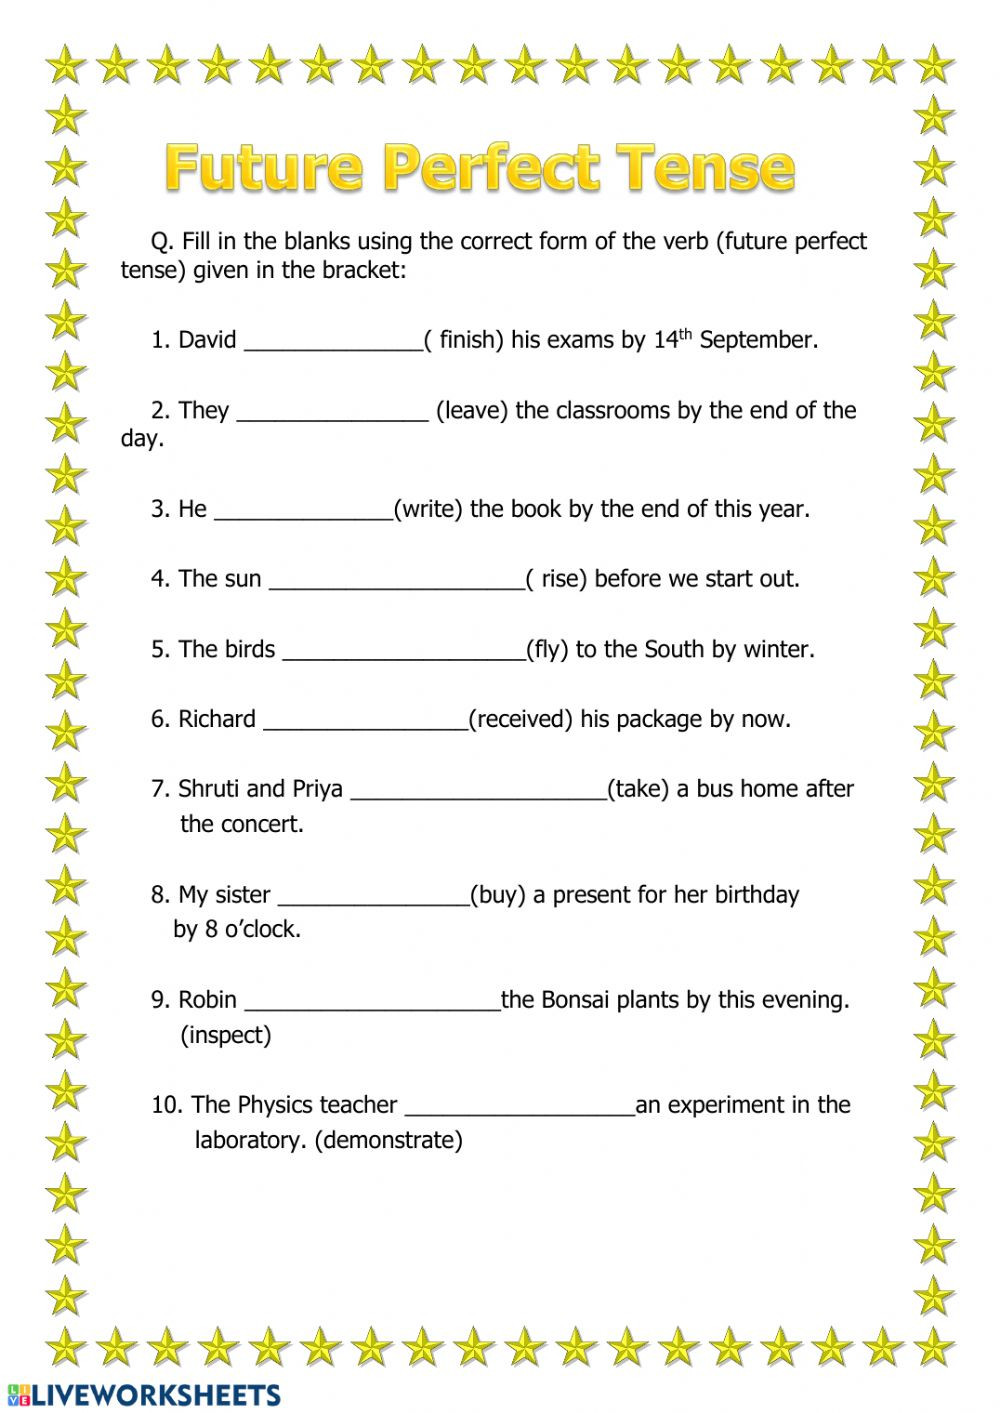 Tenses Worksheets for Grade 5 Future Perfect Tense Interactive Worksheet